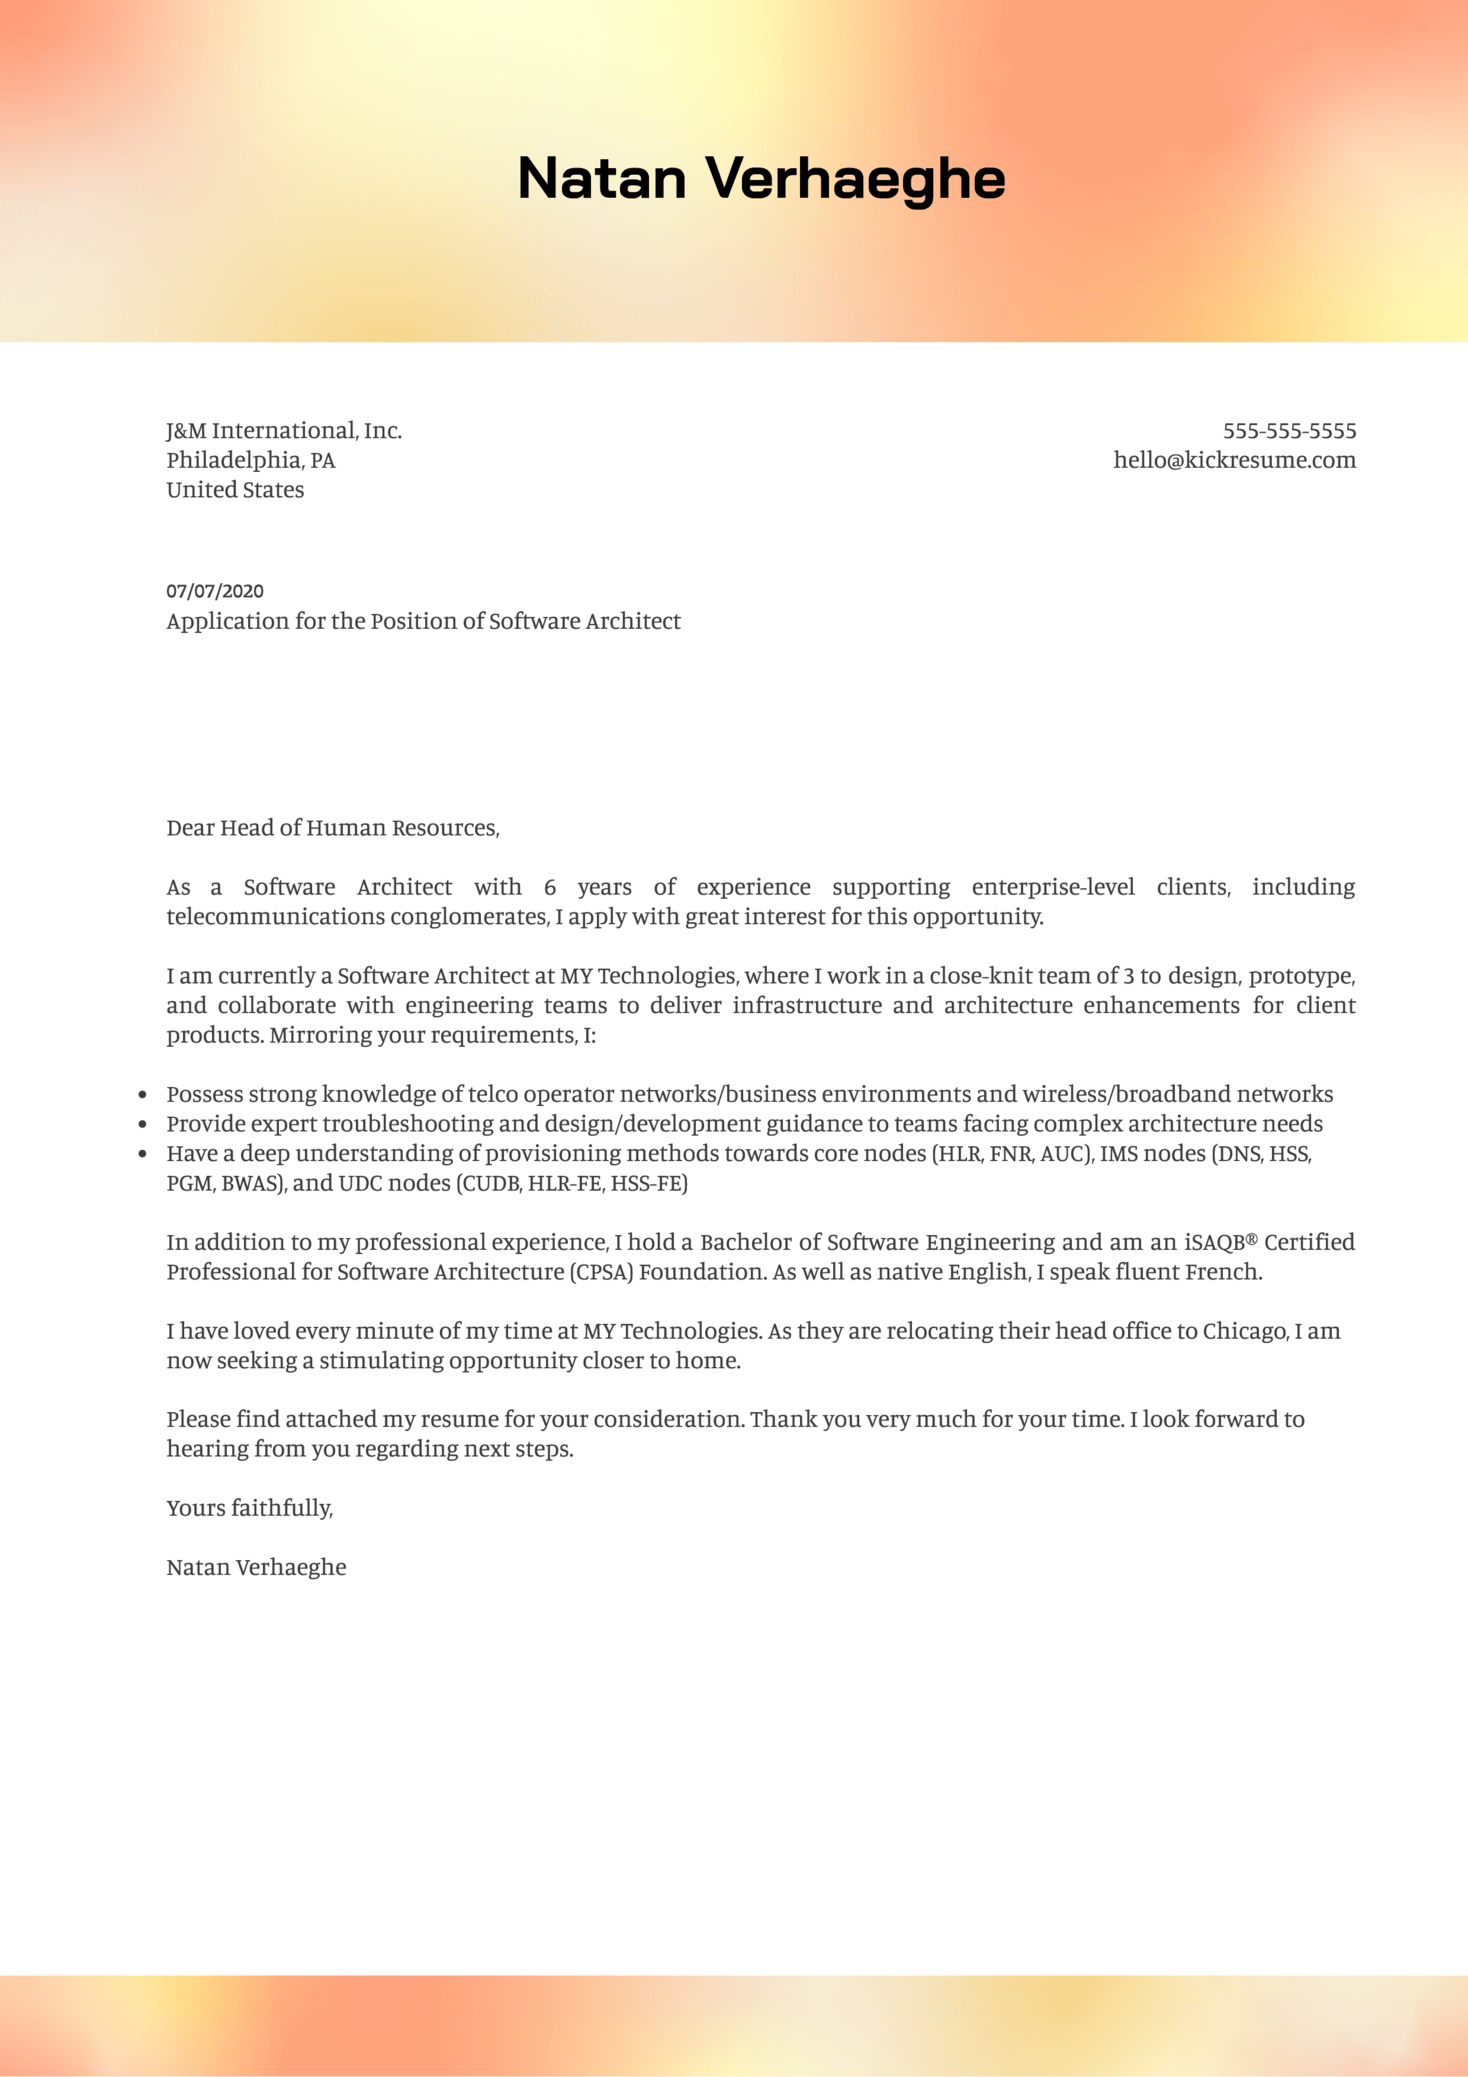 Software Architect Cover Letter Example